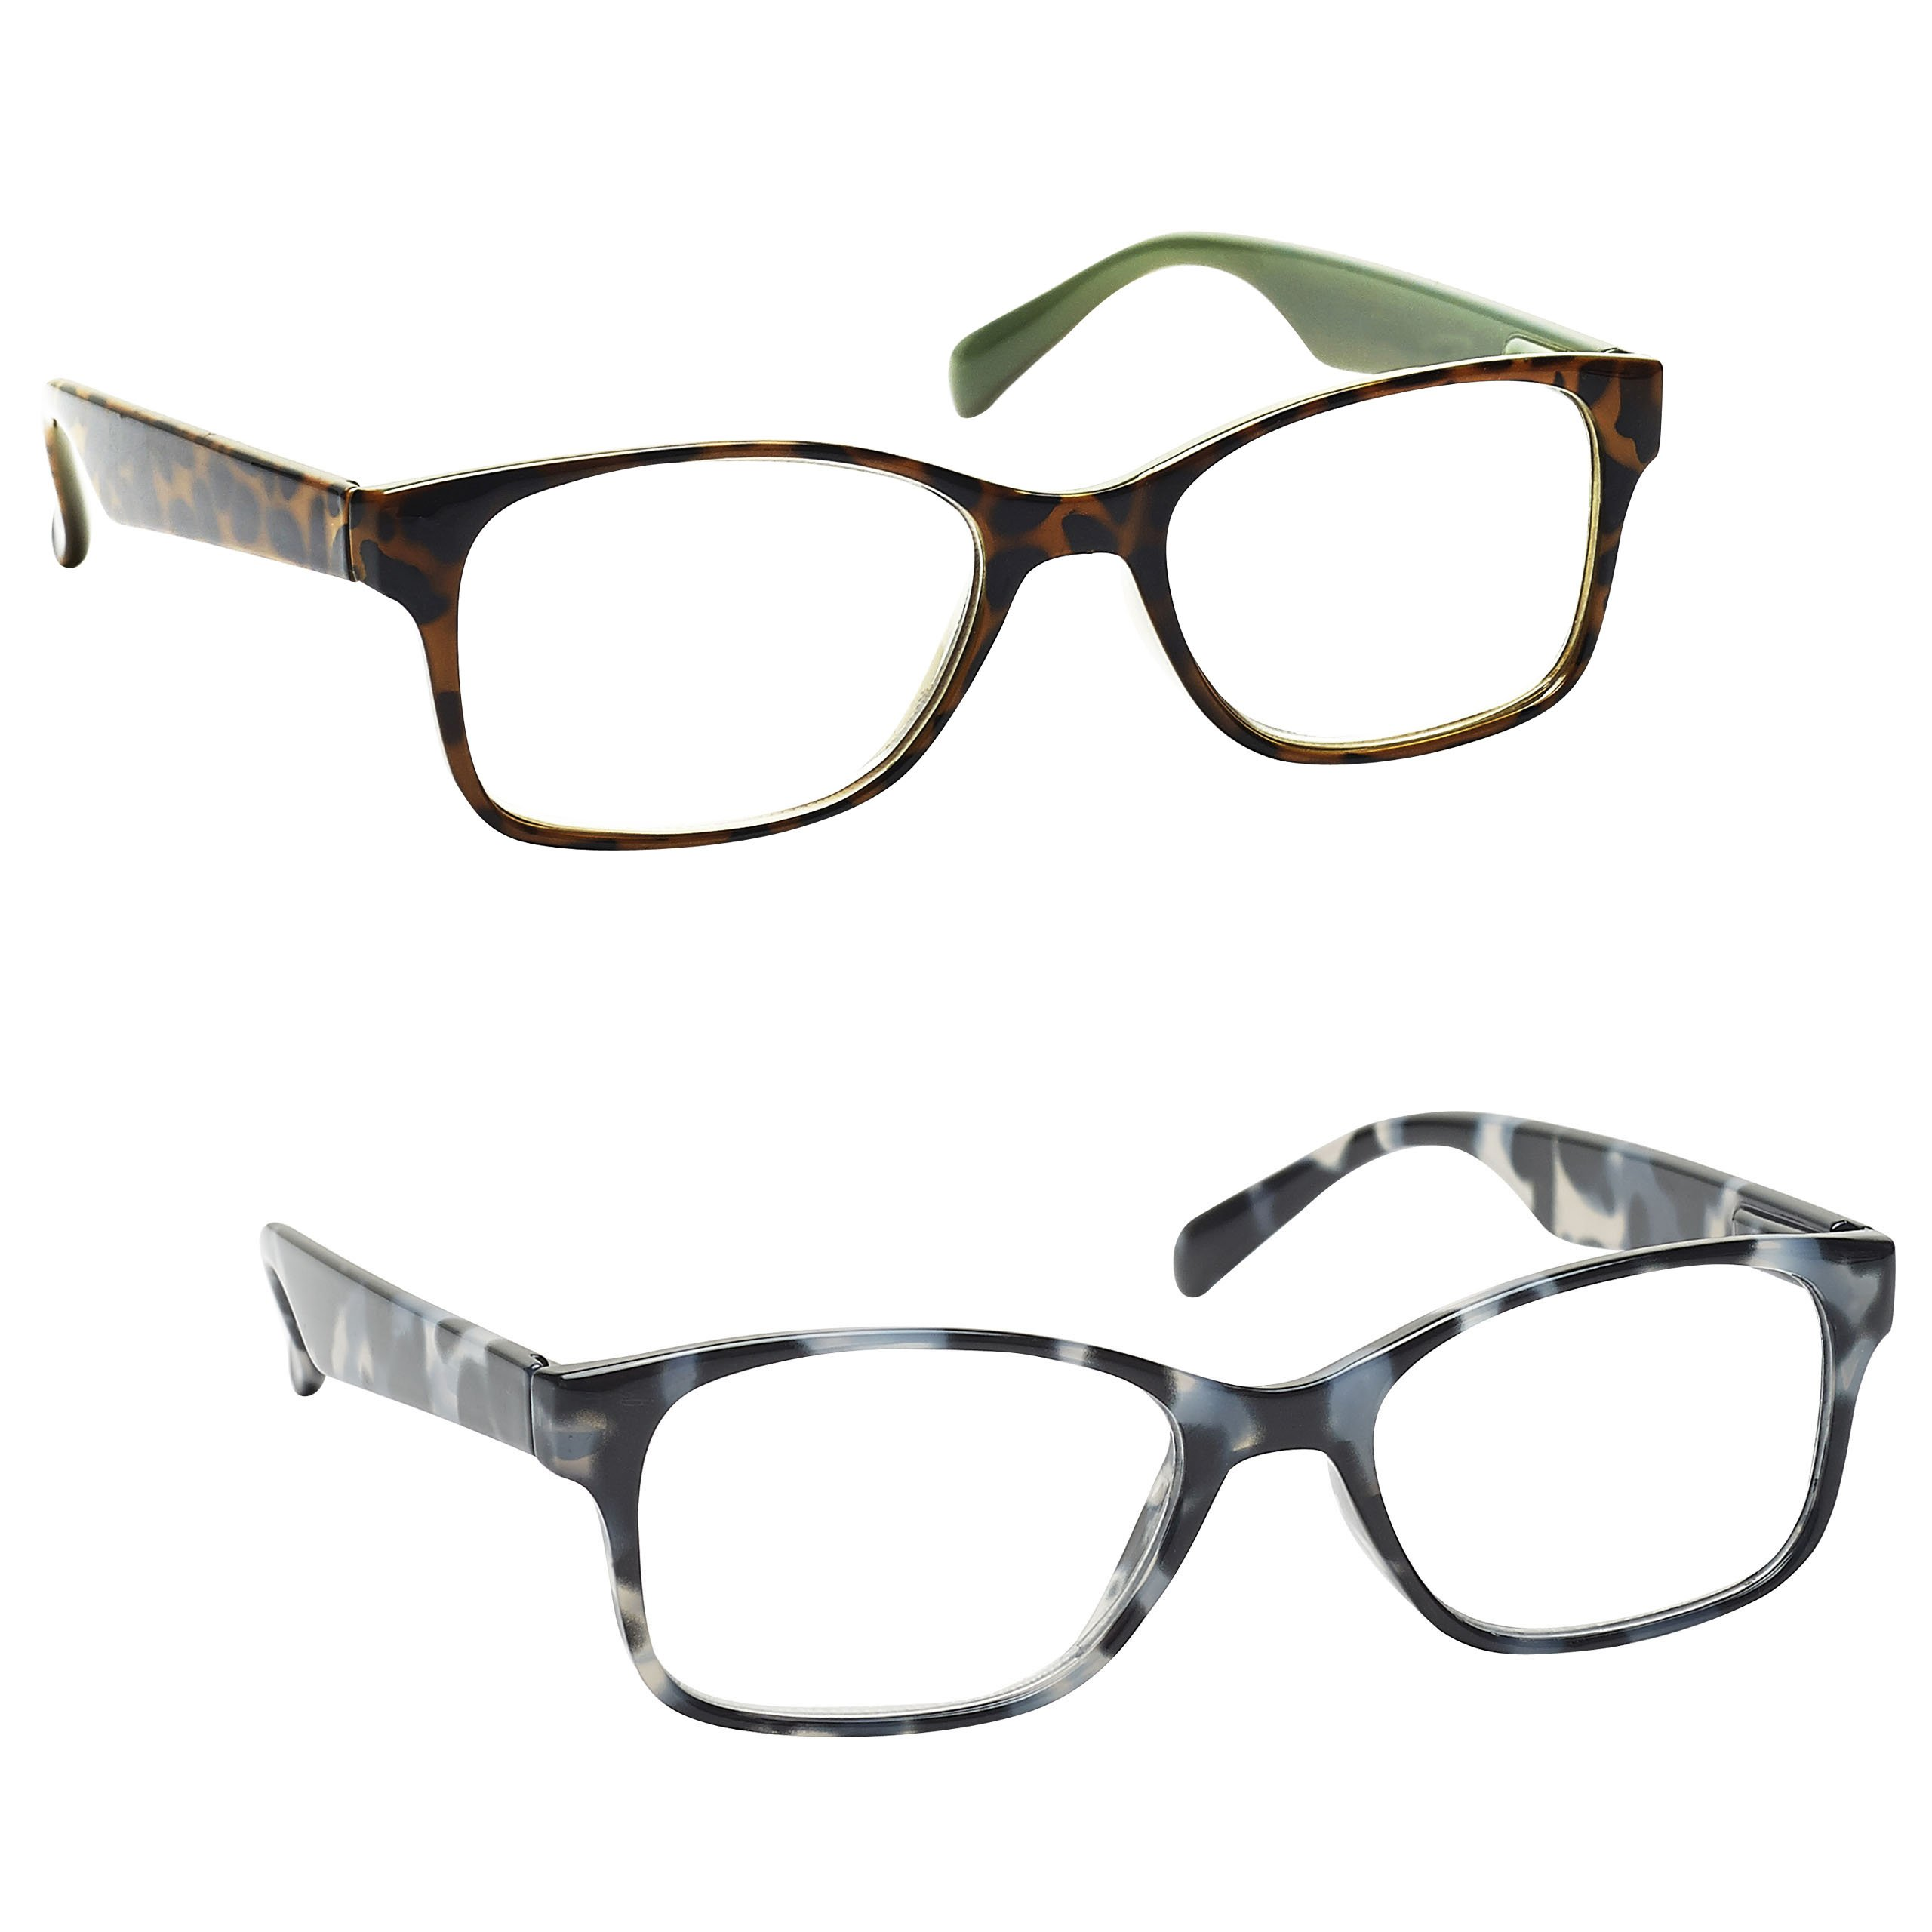 The Reading Glasses Company Brown Mint Green & Grey Tortoiseshell Readers Value 2 Pack Mens Womens Inc Bag RR71-27 +1.00